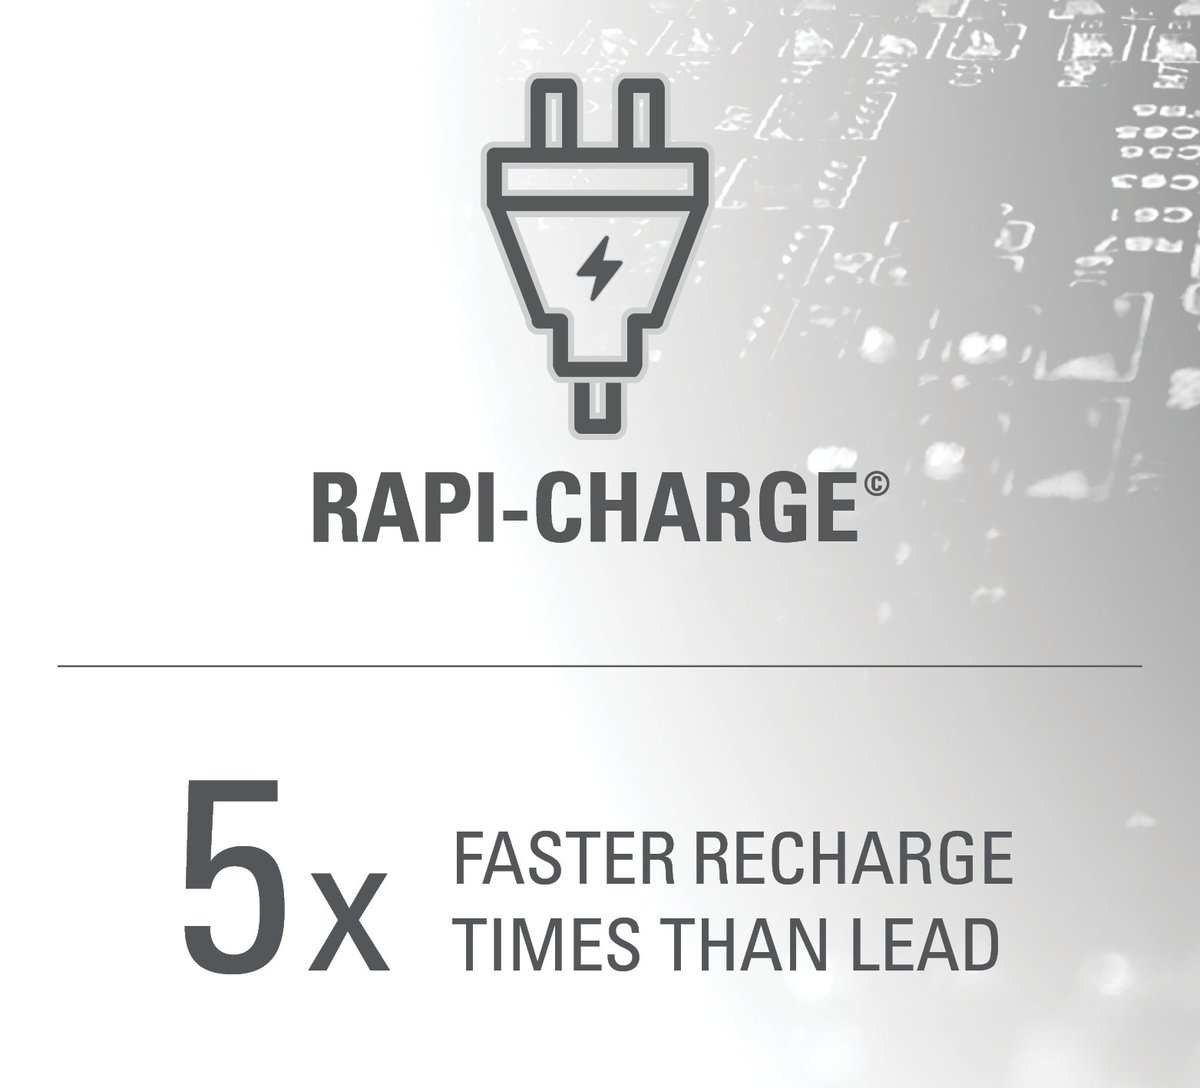 Discover Battery On Twitter Rapi Charge Discovers Lead Acid Diagram Batteries To Fully Recharge Up 5x Faster Than New Or 10x Aged Batteriespic A8vn01laaj